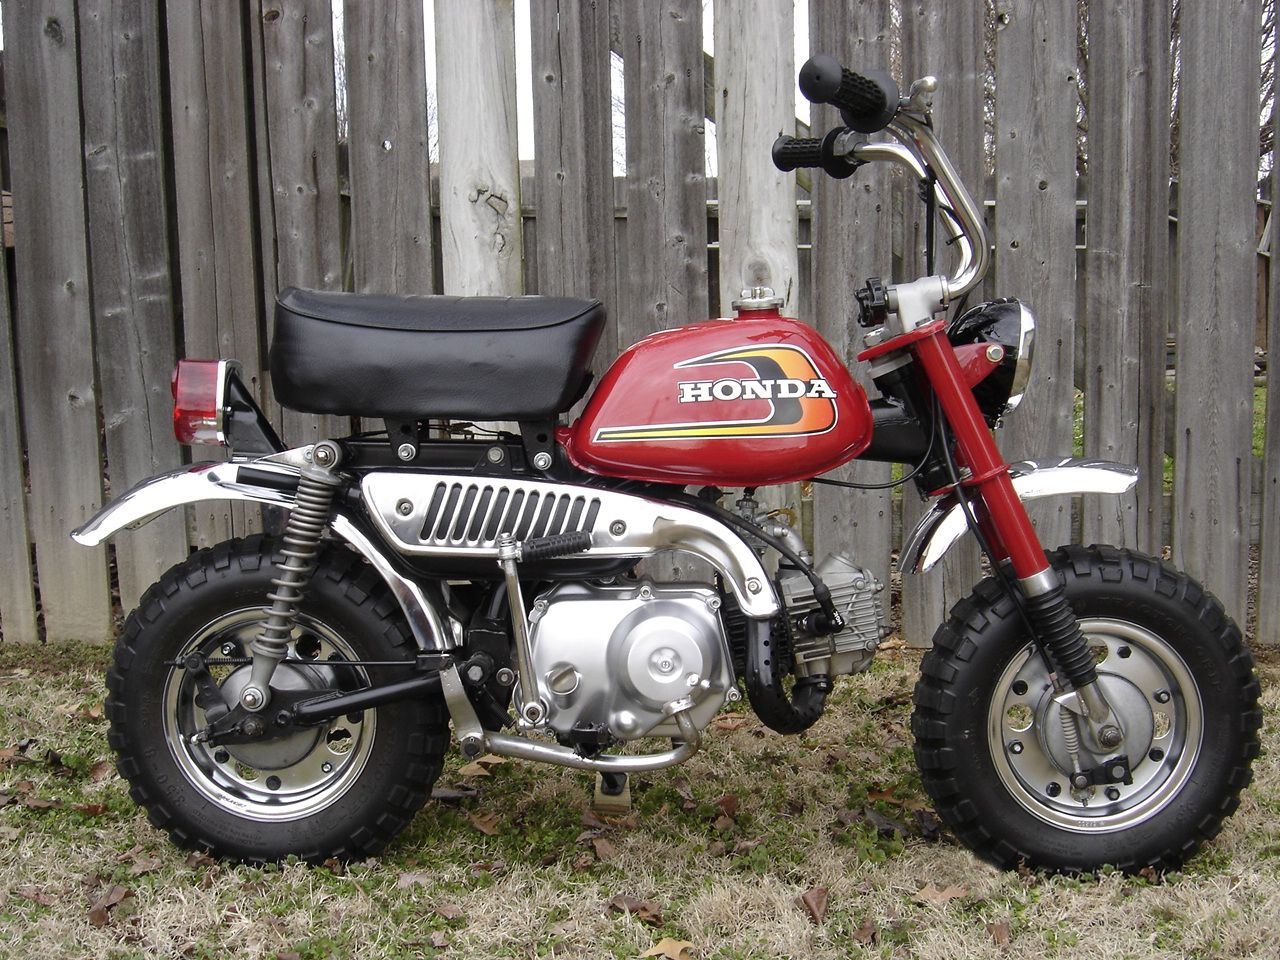 honda z50 the honda z series refers to the lineage of. Black Bedroom Furniture Sets. Home Design Ideas